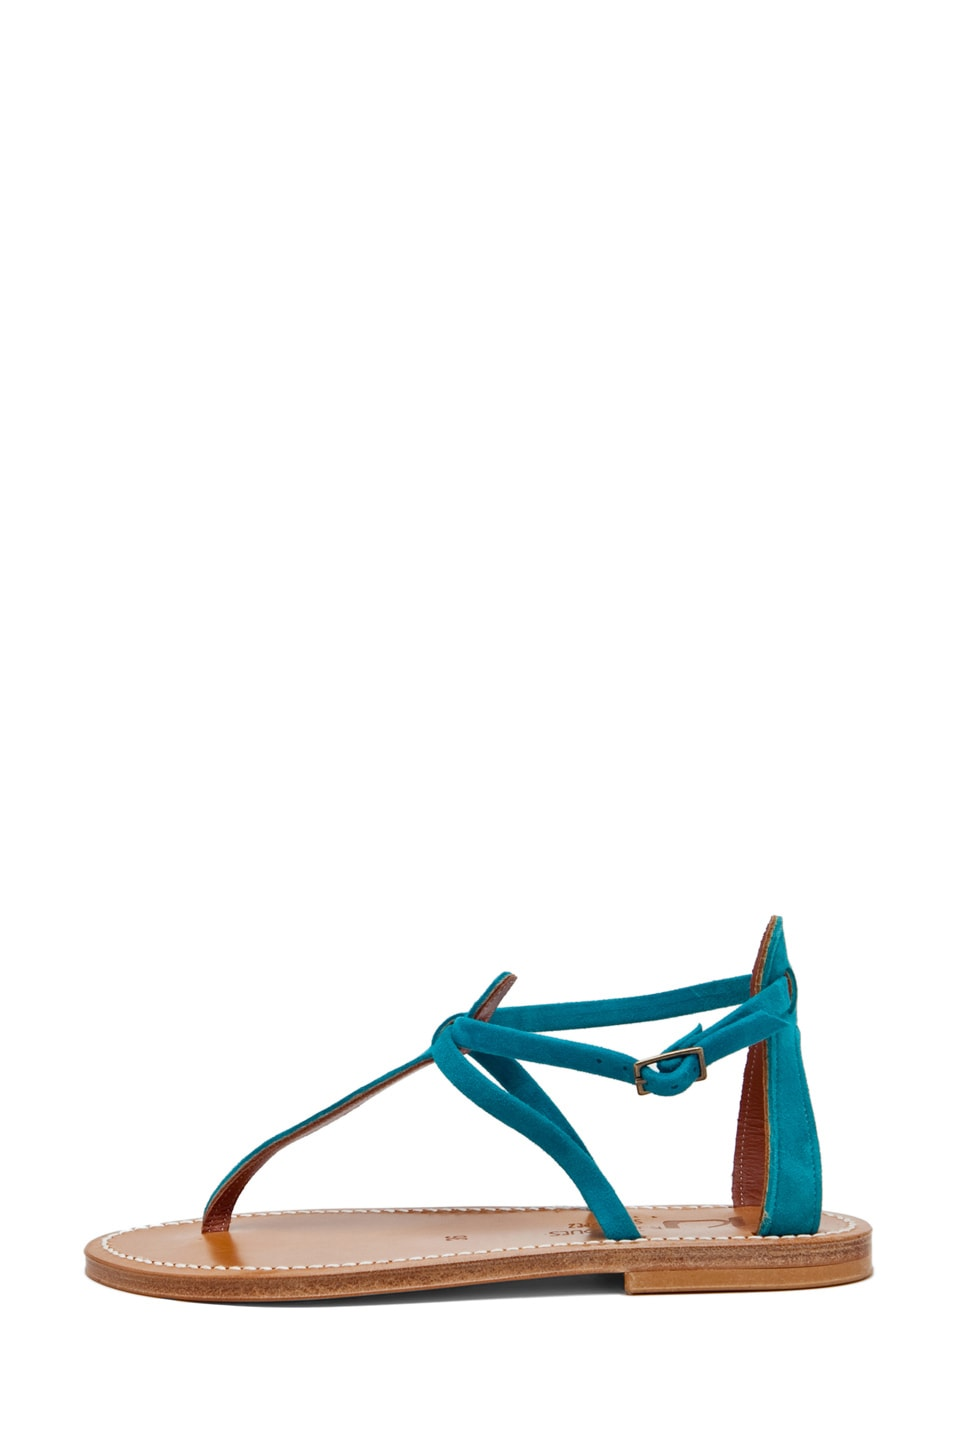 Image 1 of K. Jacques Buffon Suede Sandal in Turquoise